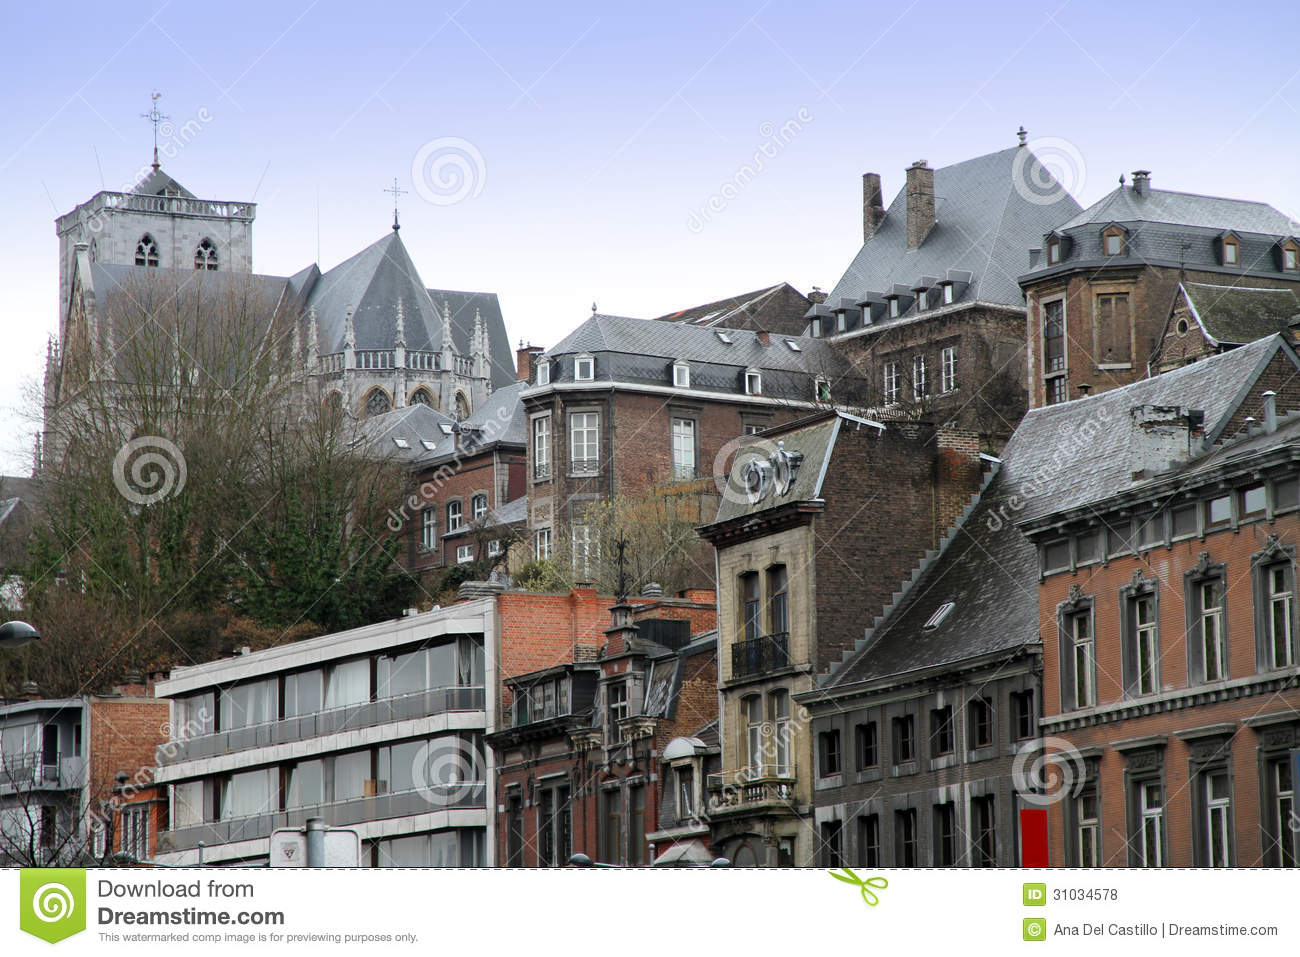 Liege Clipart Liege Wallonia Belgium Royalty Free Stock Photos Image